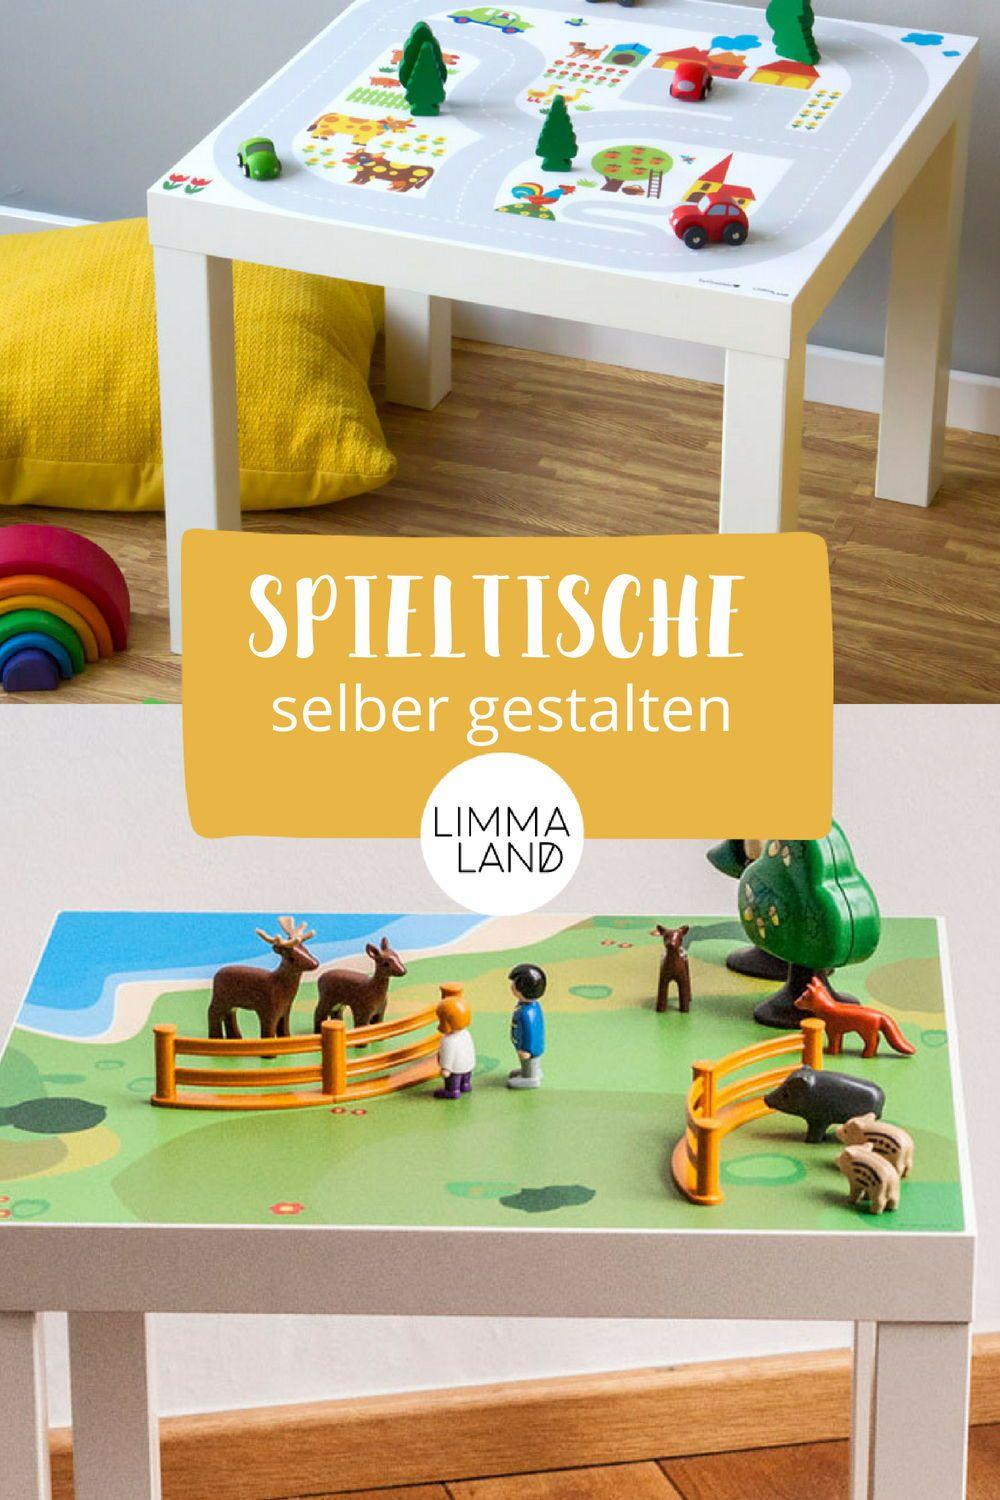 spieltische f r lego und playmobil k nnt ihr selber bauen aus einem ikea tisch und unseren. Black Bedroom Furniture Sets. Home Design Ideas